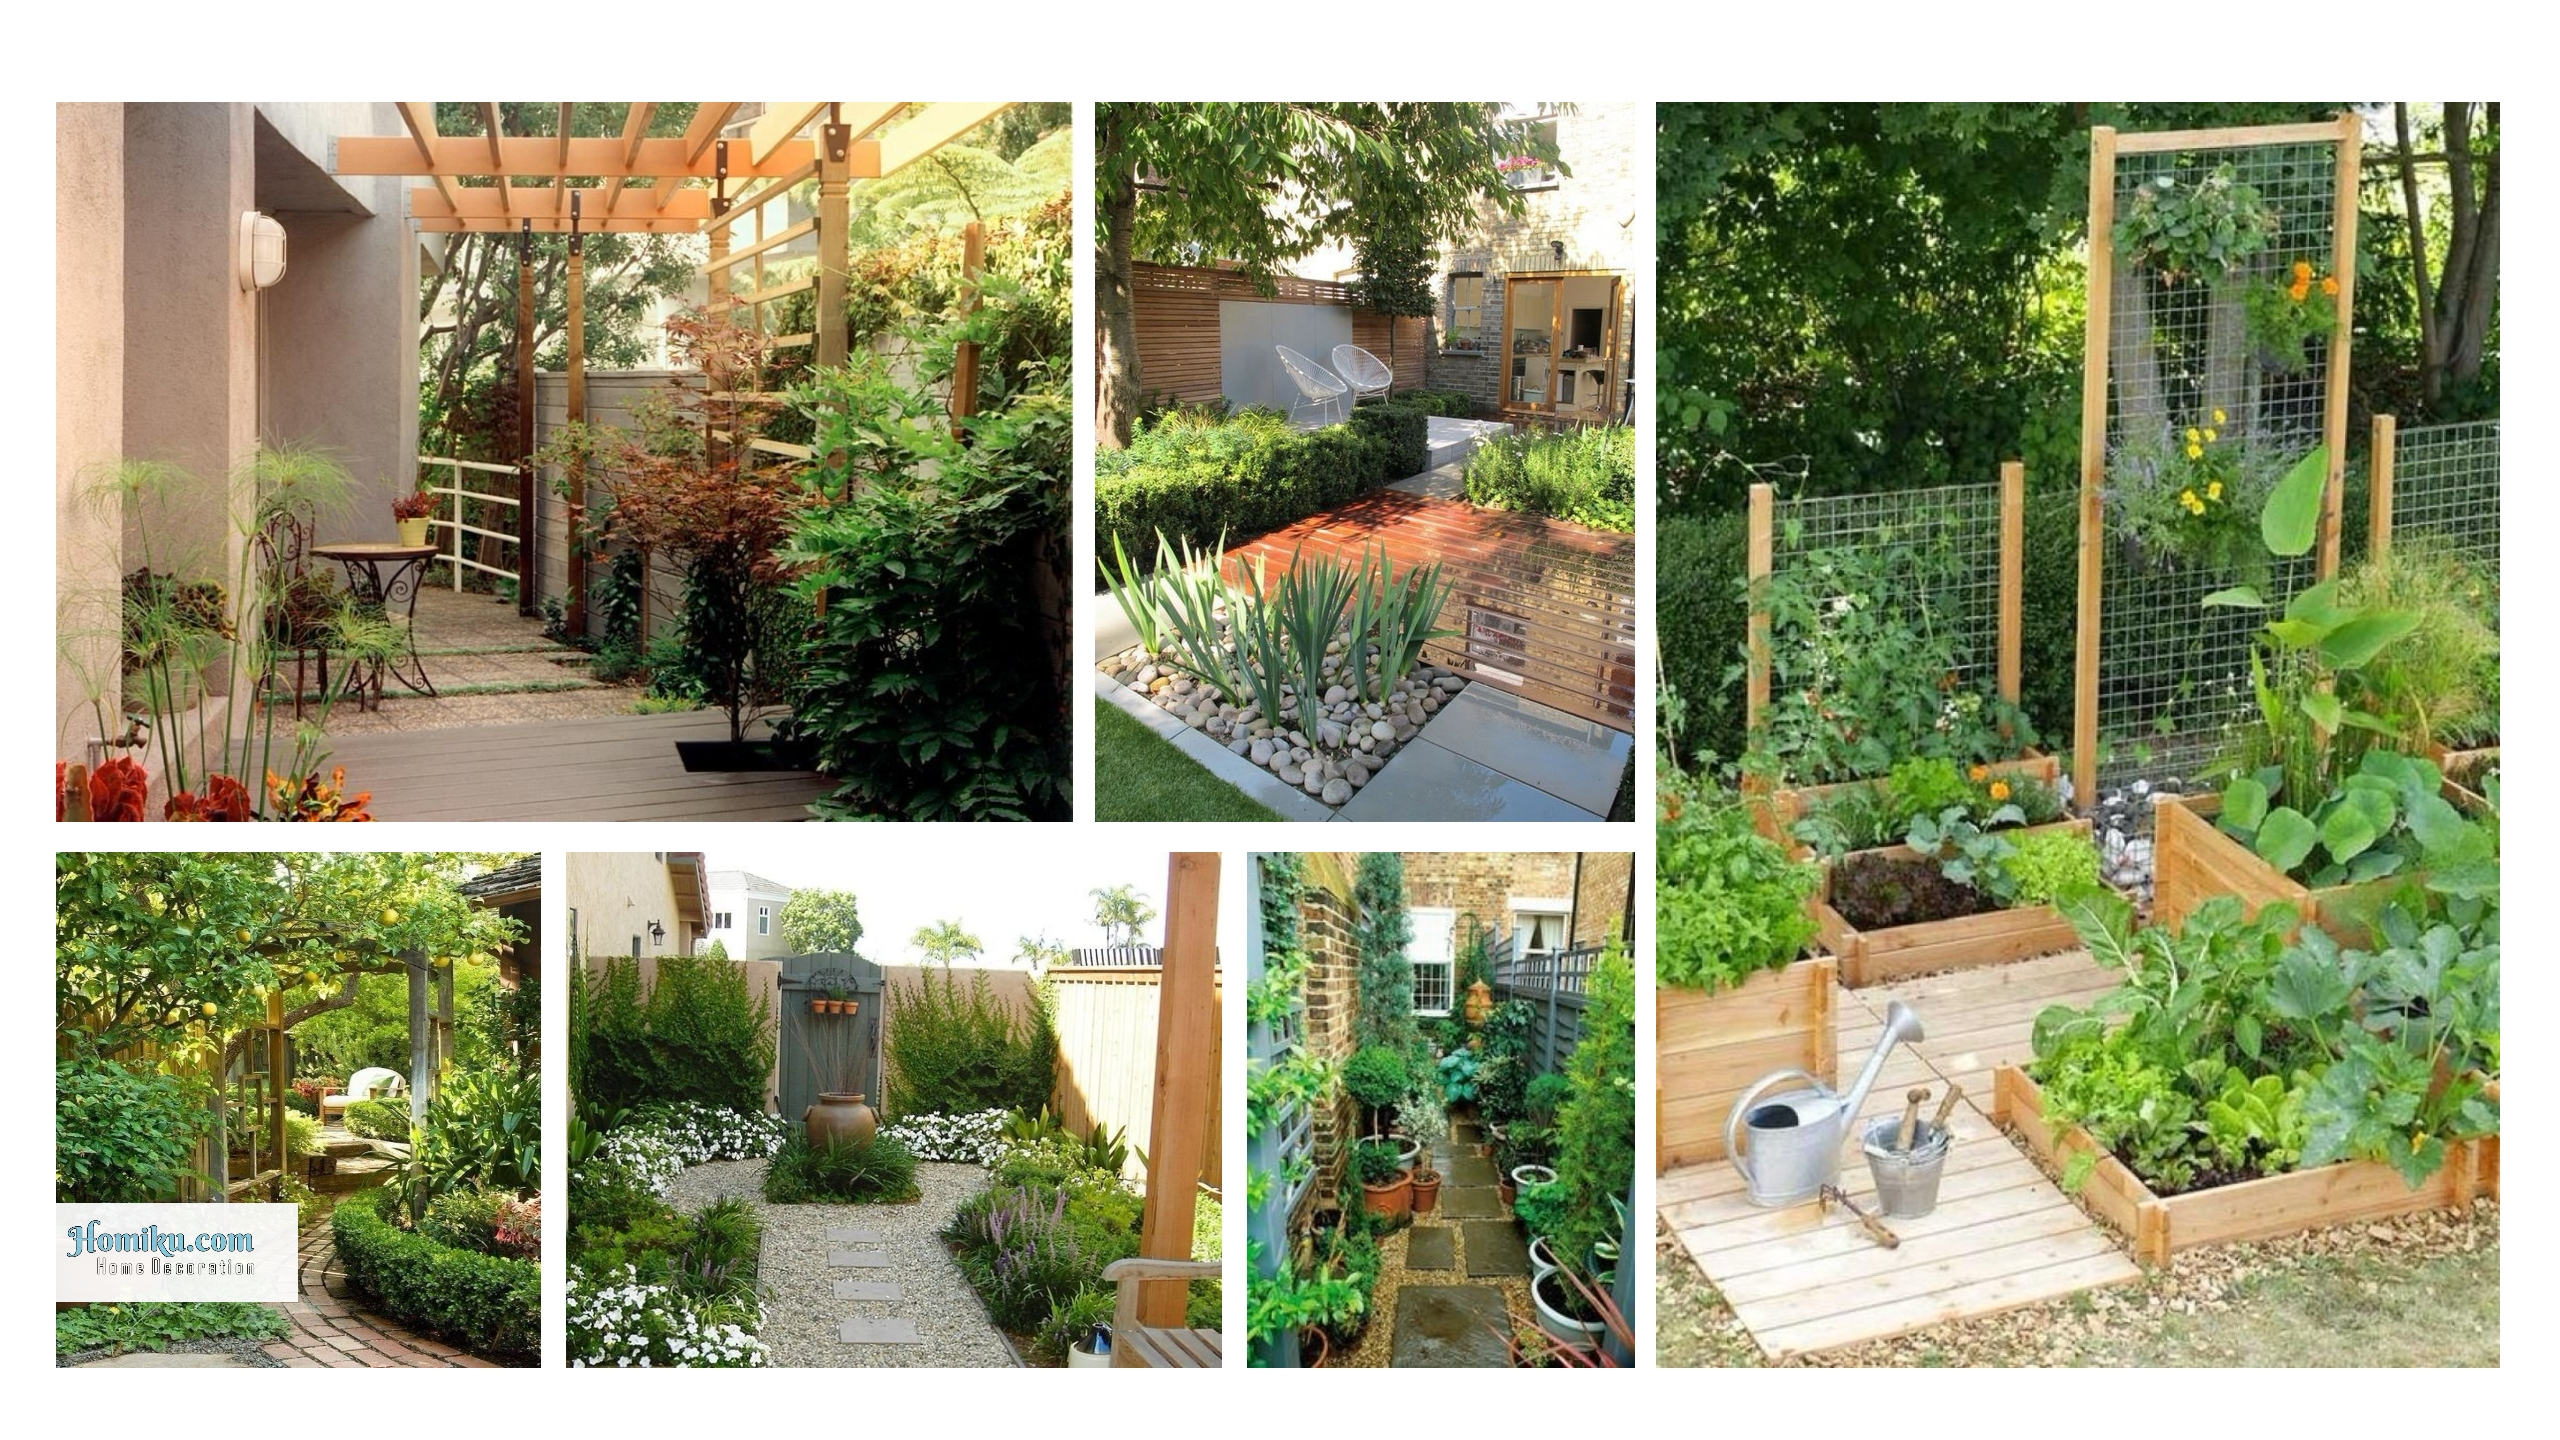 39 Best Small Backyard With Space Saving Decorating For Gardening pertaining to Decorating Small Backyards